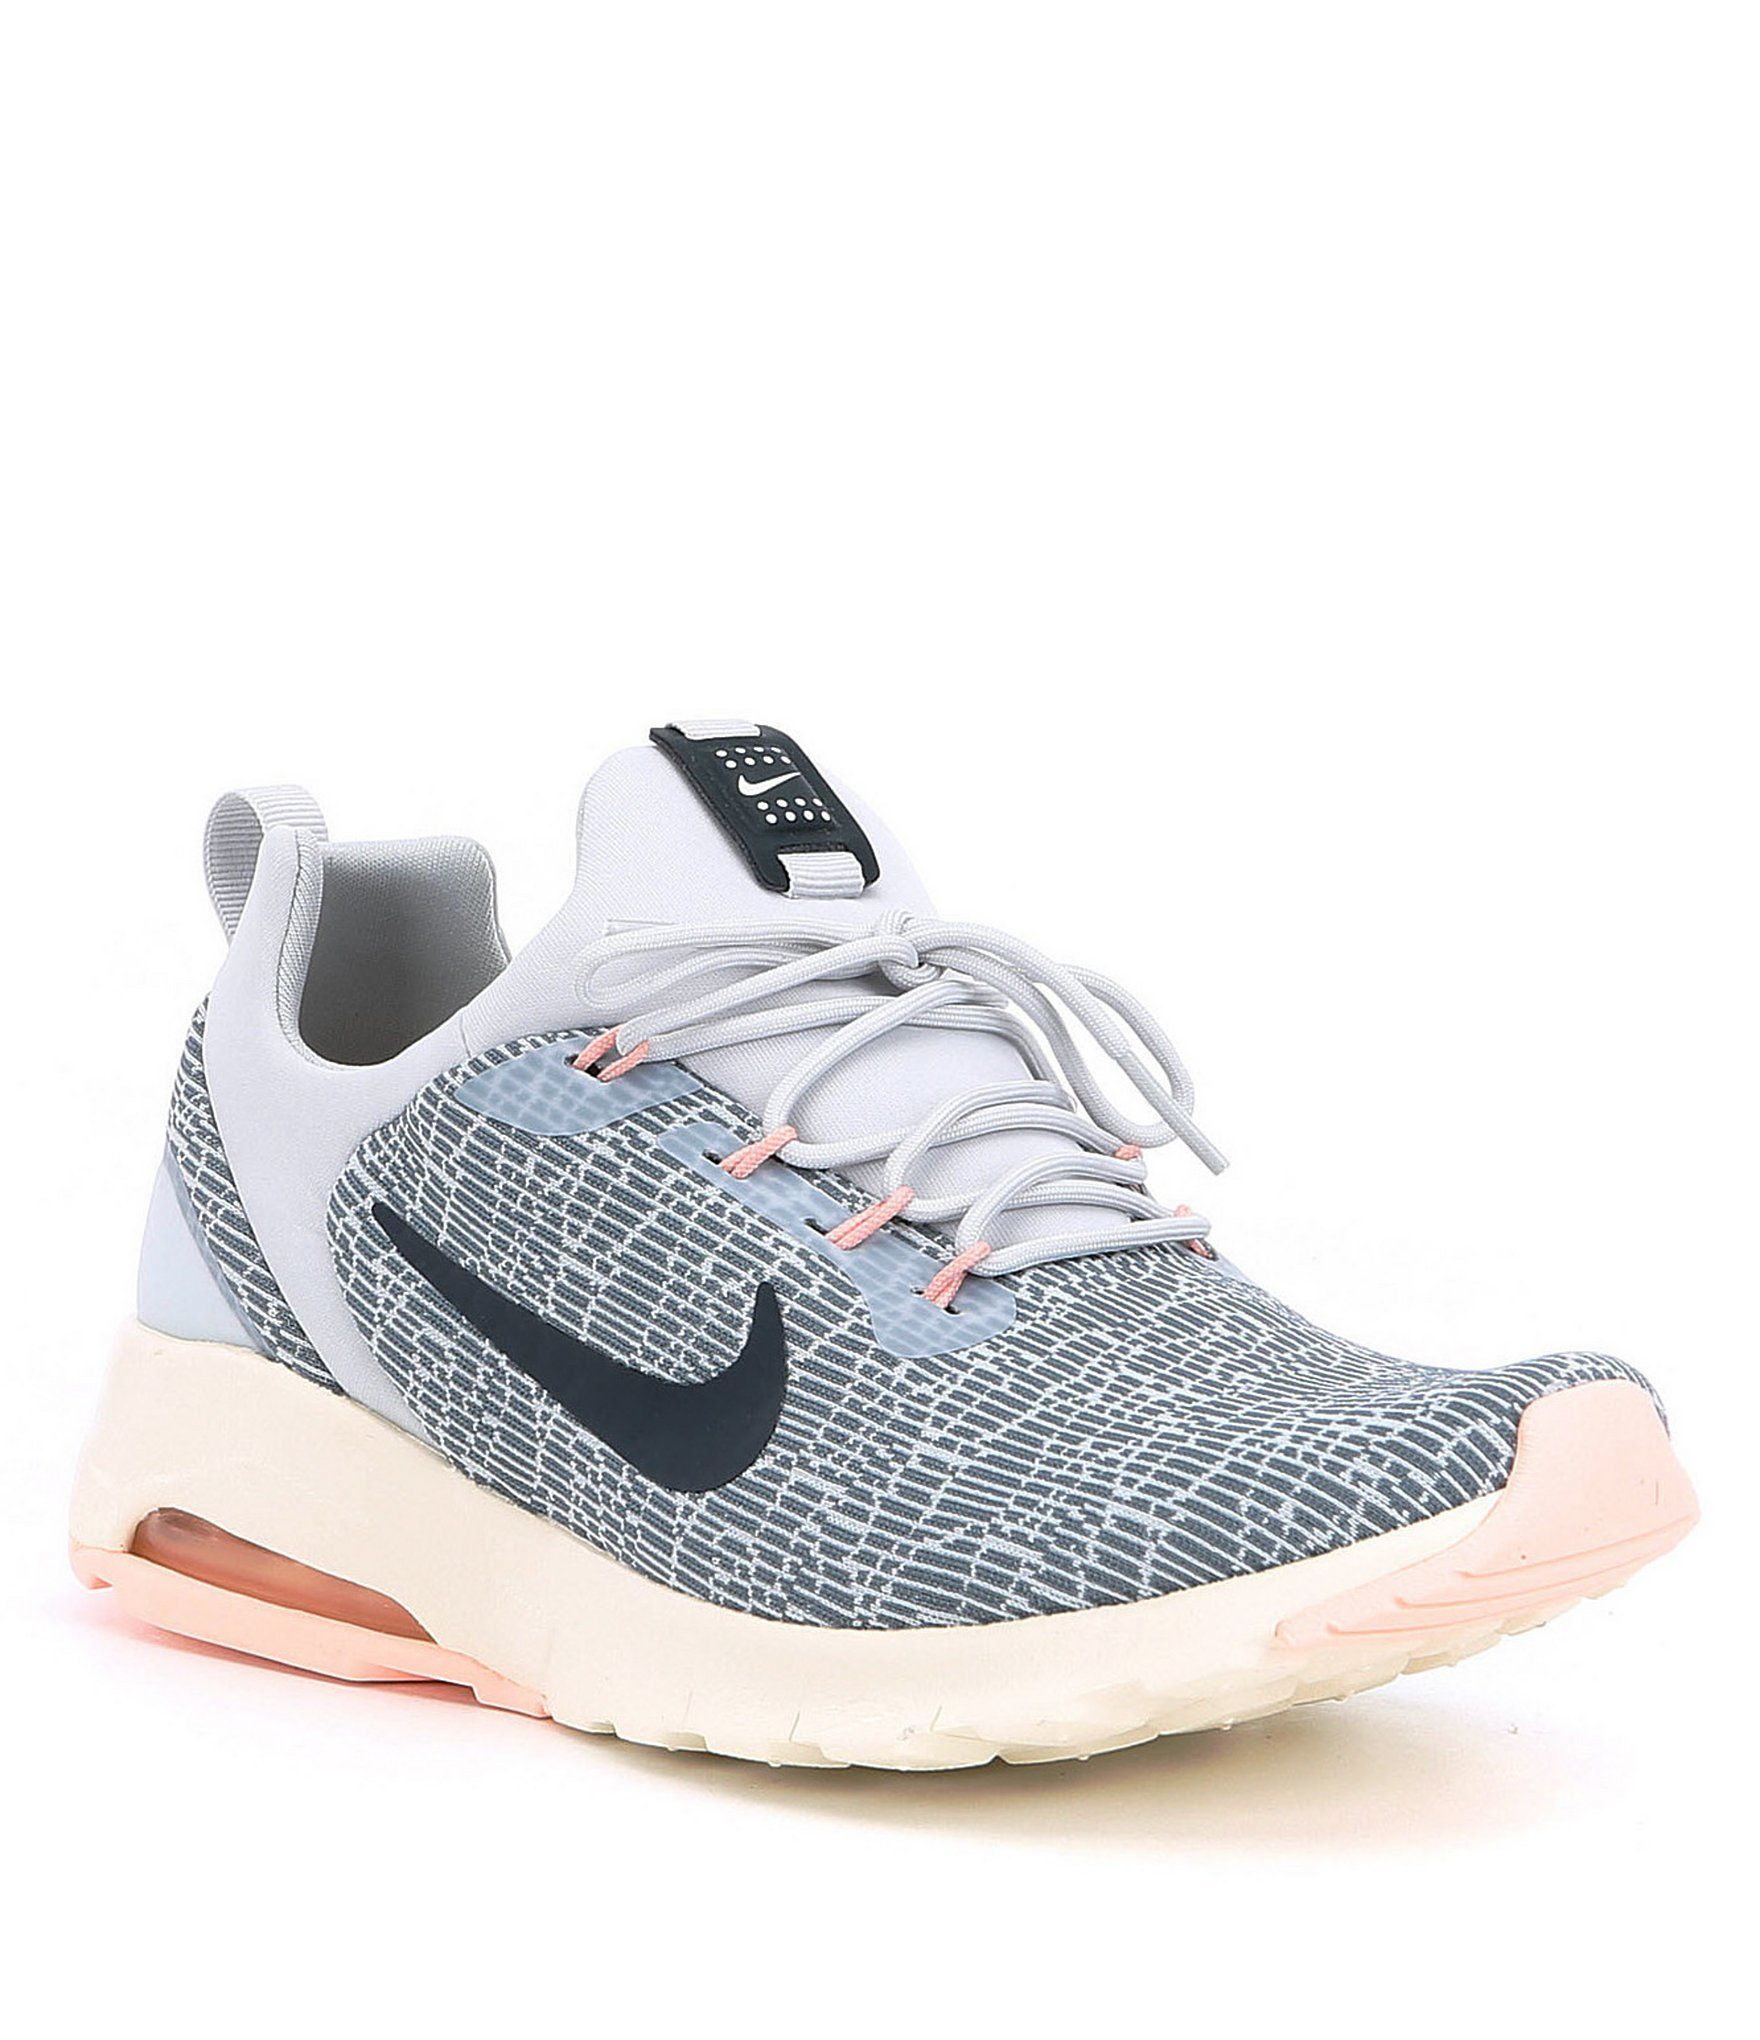 online retailer a6a8a 79c79 Nike Womens Air Max Motion LW Lifestyle Shoes  Dillards